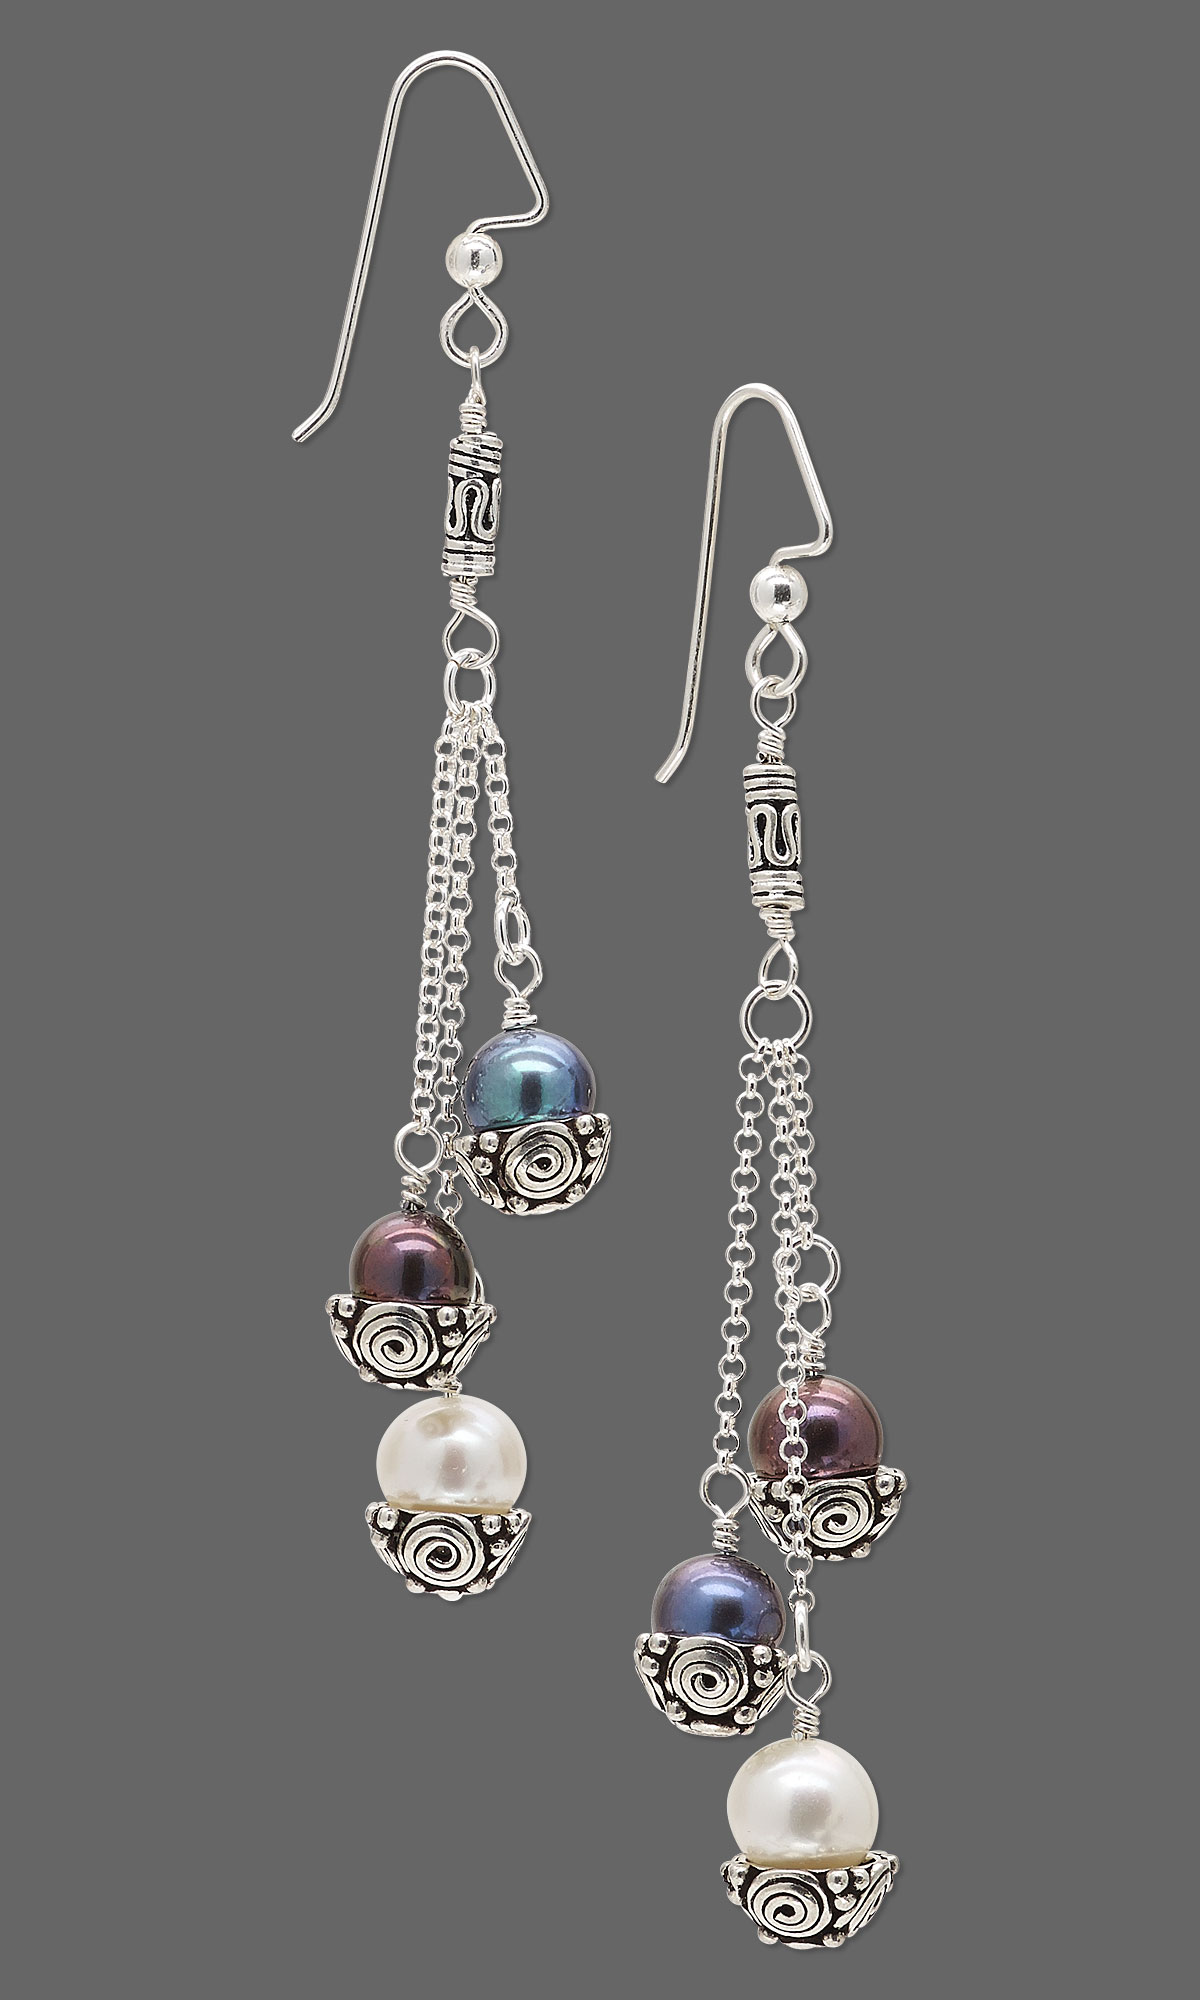 jewelry designs of silver design caps with and sterling beads chain bead antiqued pearls freshwater resources gallery cultured earrings